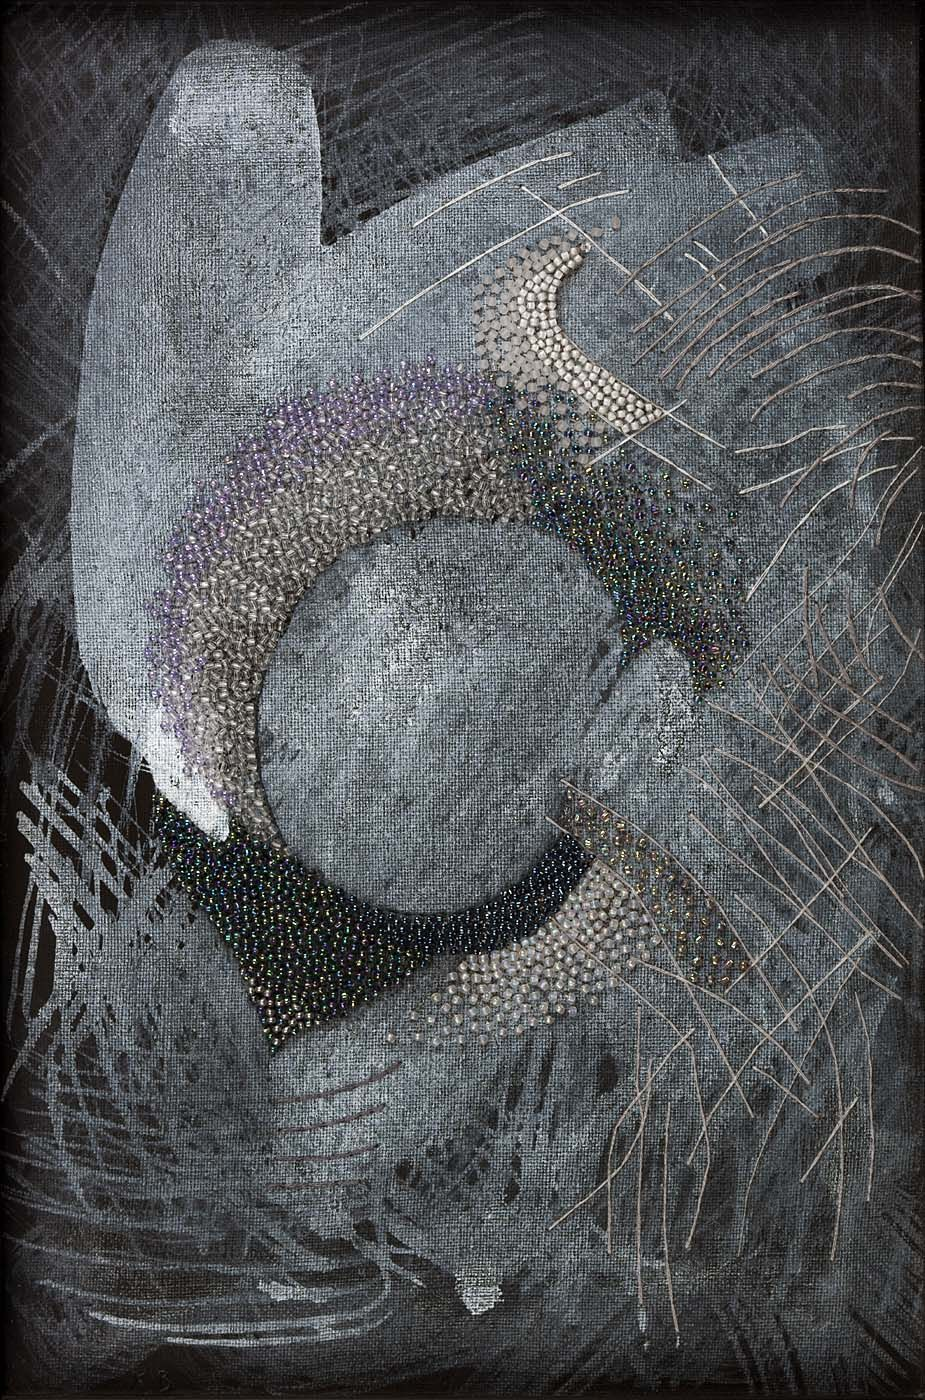 Karin Birch (b.1960), Night Sky (1997), linen, embroidery thread, glass  beads, and acrylic paint, 23.1 x 33.0 cm. Collection of Smithsonian American  Art ...